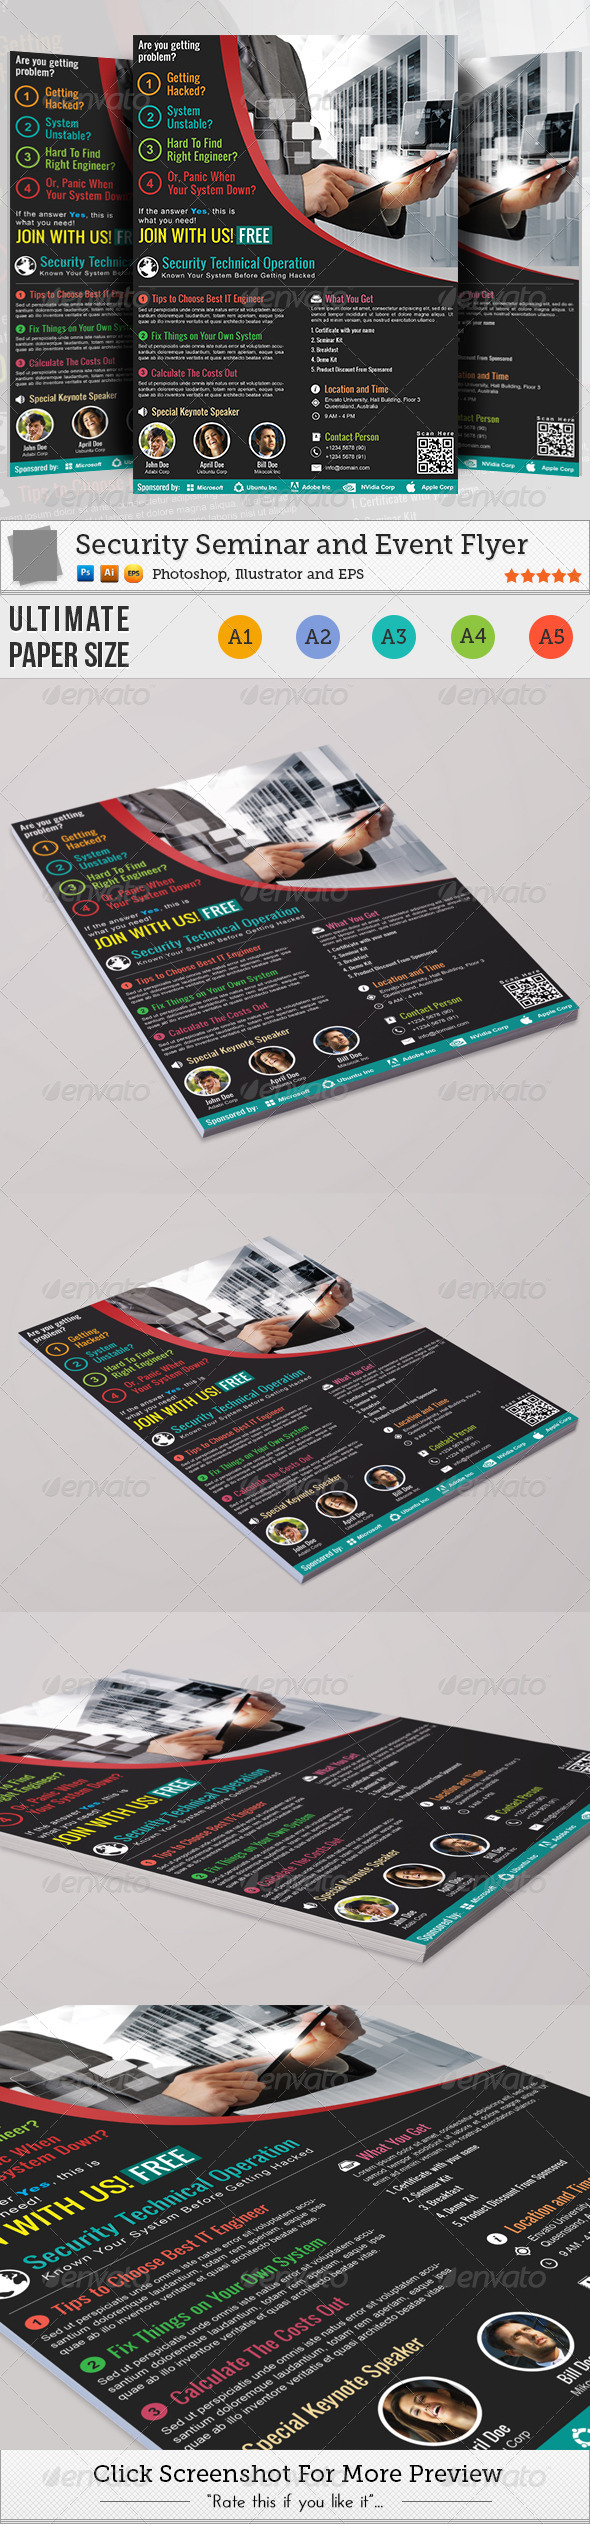 GraphicRiver Security Seminar and Event Flyer 4541469